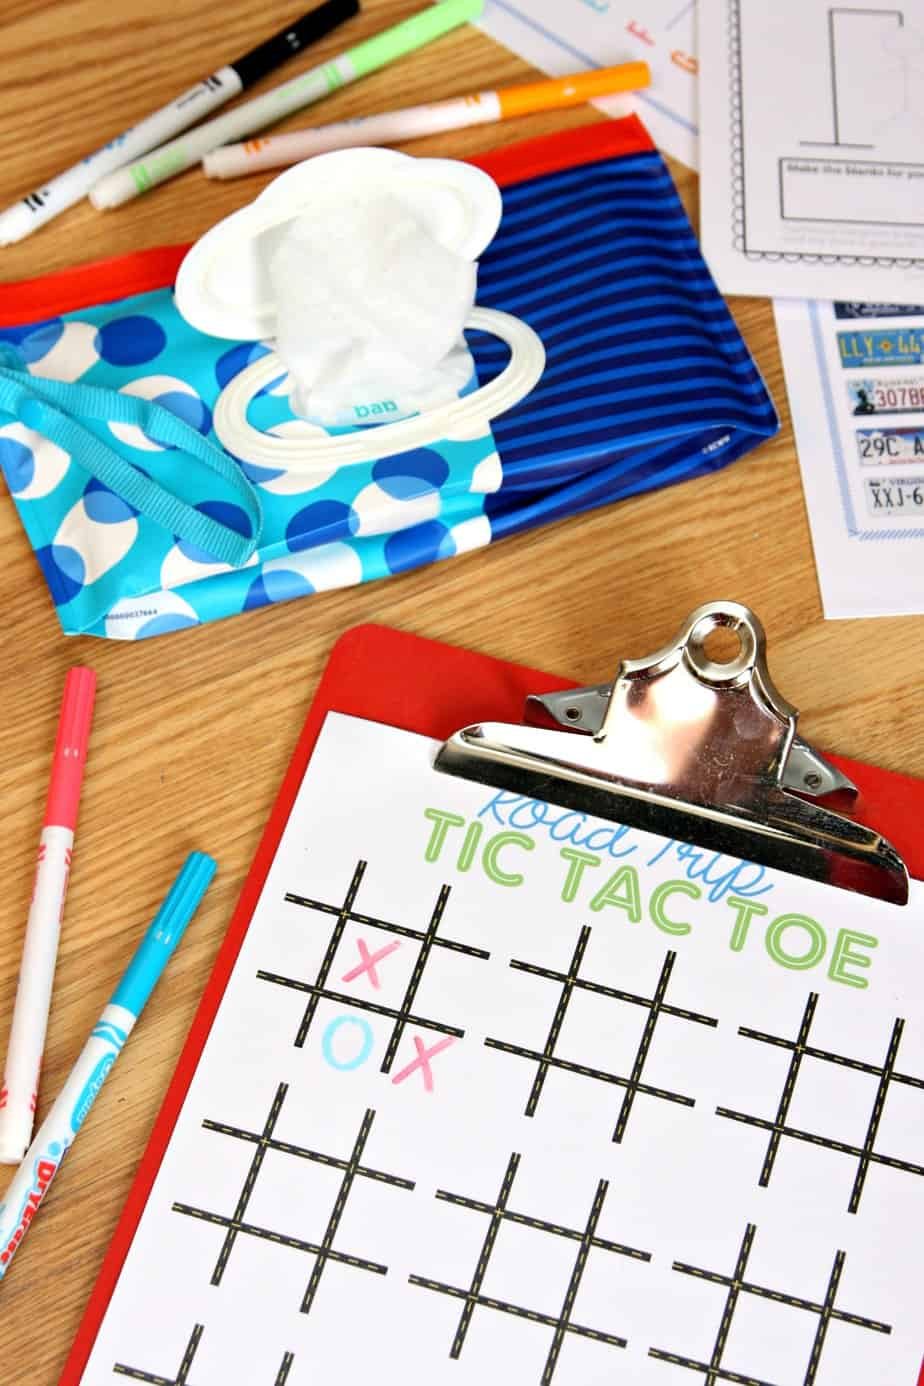 Road Trip Kit for Kids - Dry Erase Boards